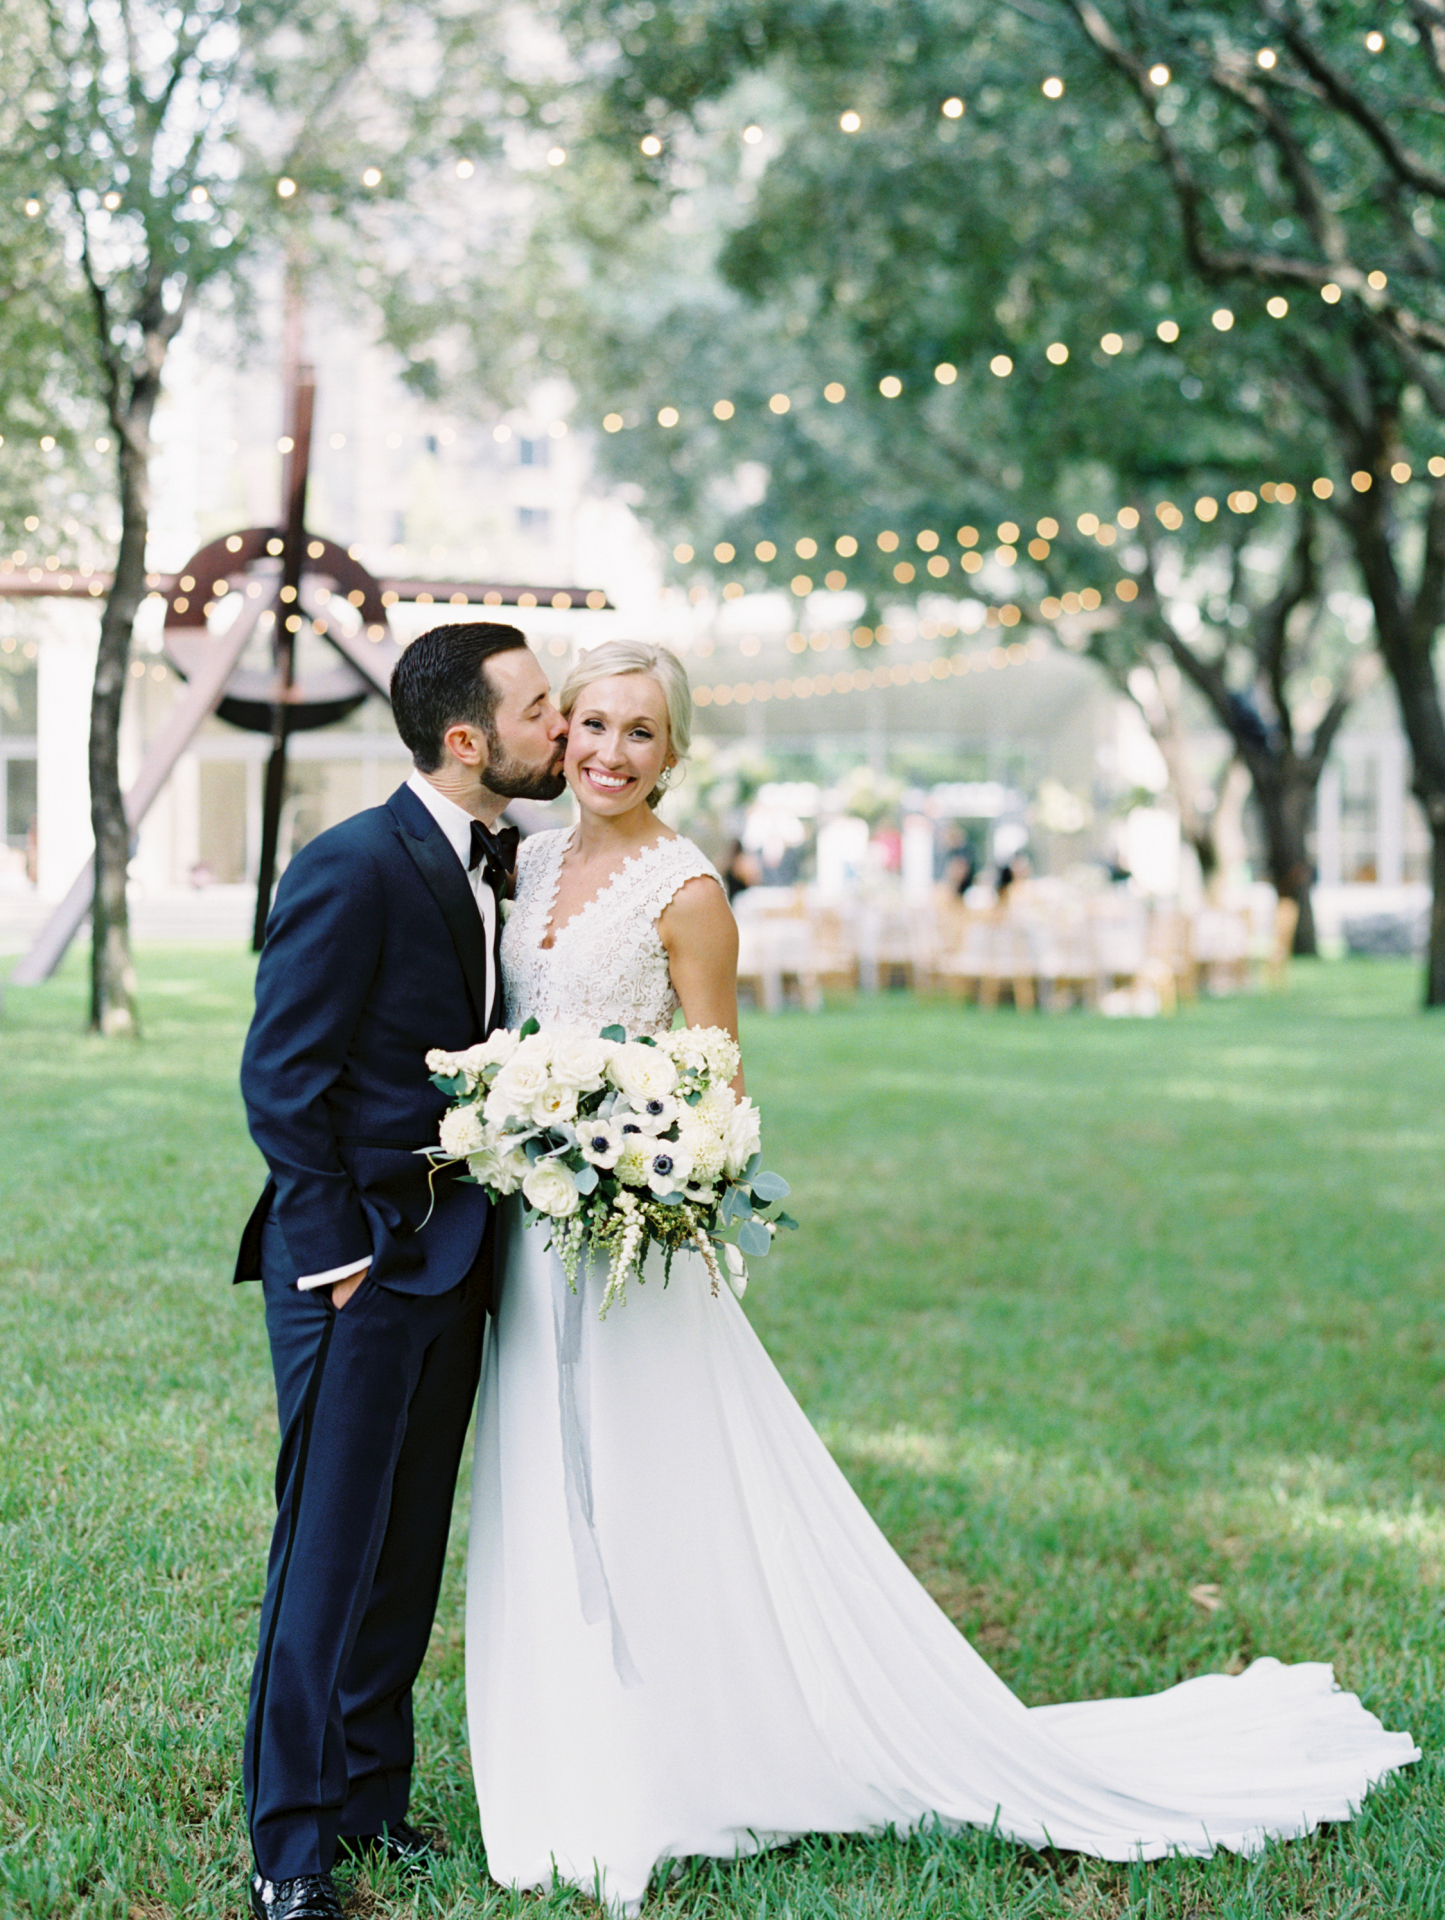 Keri + Peyton | The Nasher Sculpture Museum